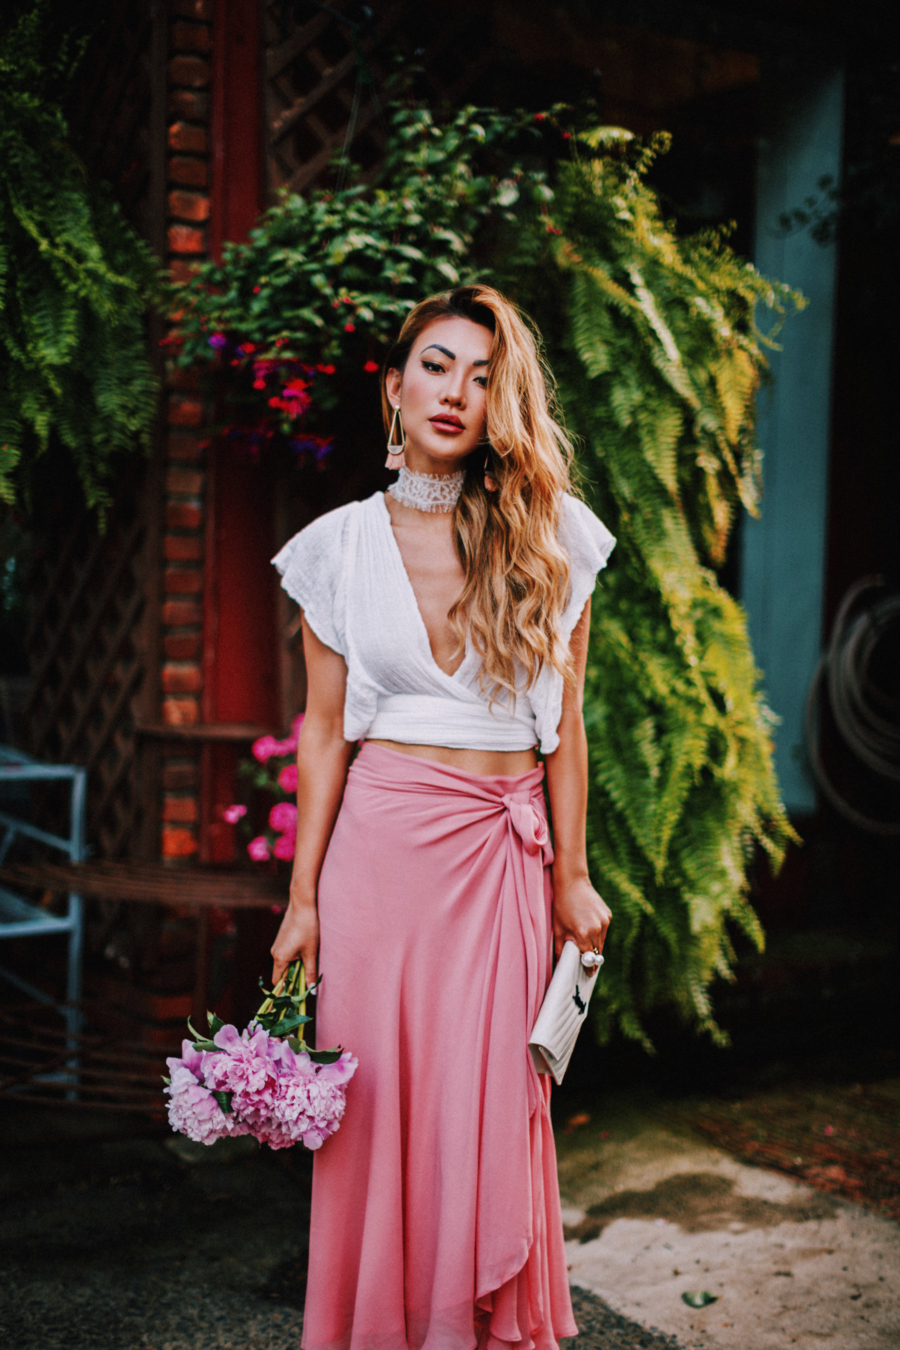 The best crop tops for summer - flutter sleeve crop top // NotJessFashion.com